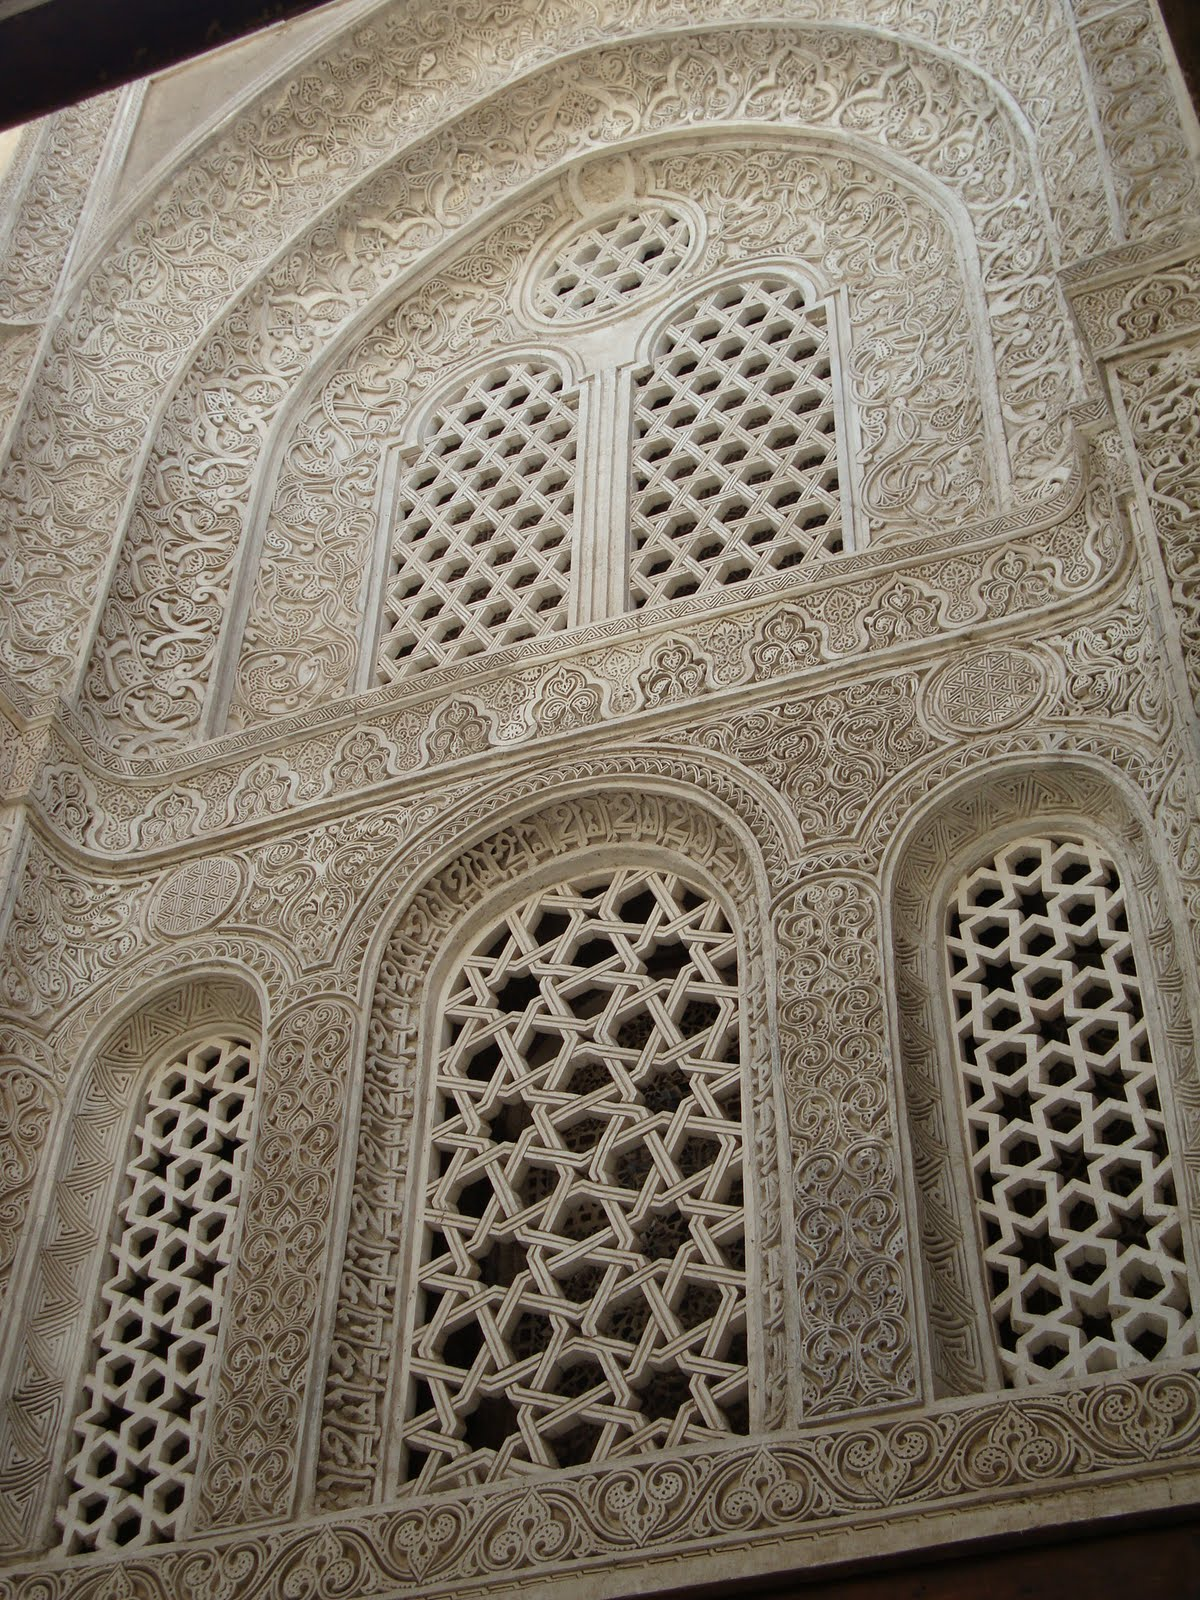 islamic architecture Islamic architecture the great cities of the islamic world form a chain reaching from northern india to the andalusian region in modern spain, encompassing marrakech, cairo, damascus and baghdad along the way.